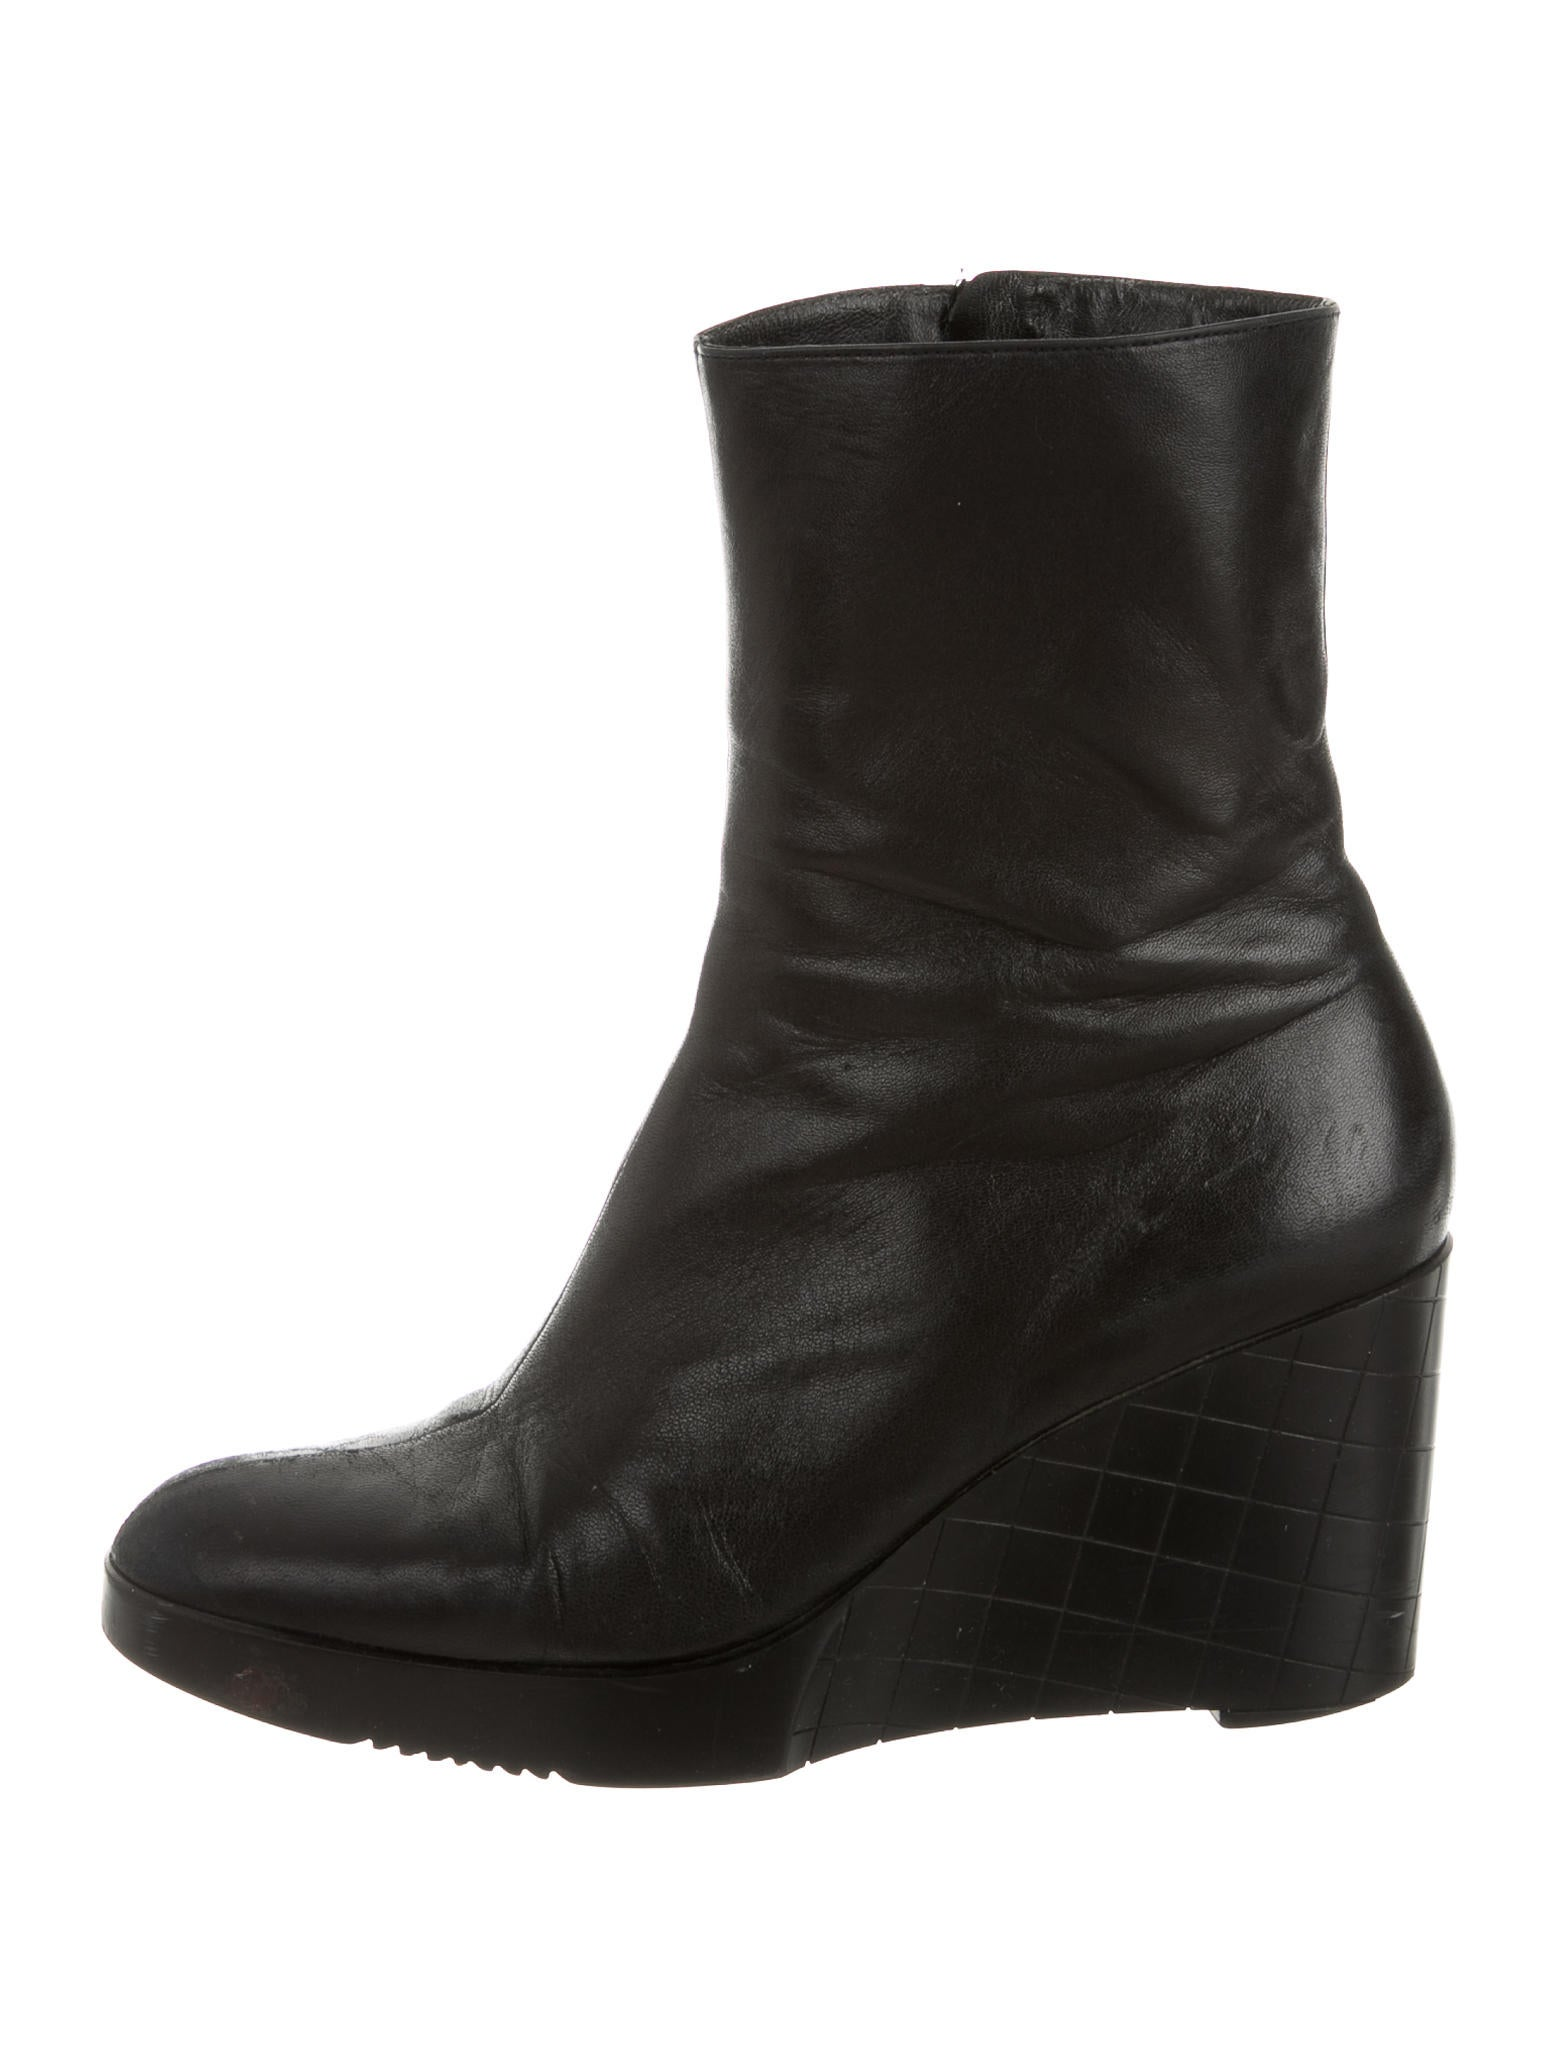 robert clergerie wedge ankle boots shoes rog23398